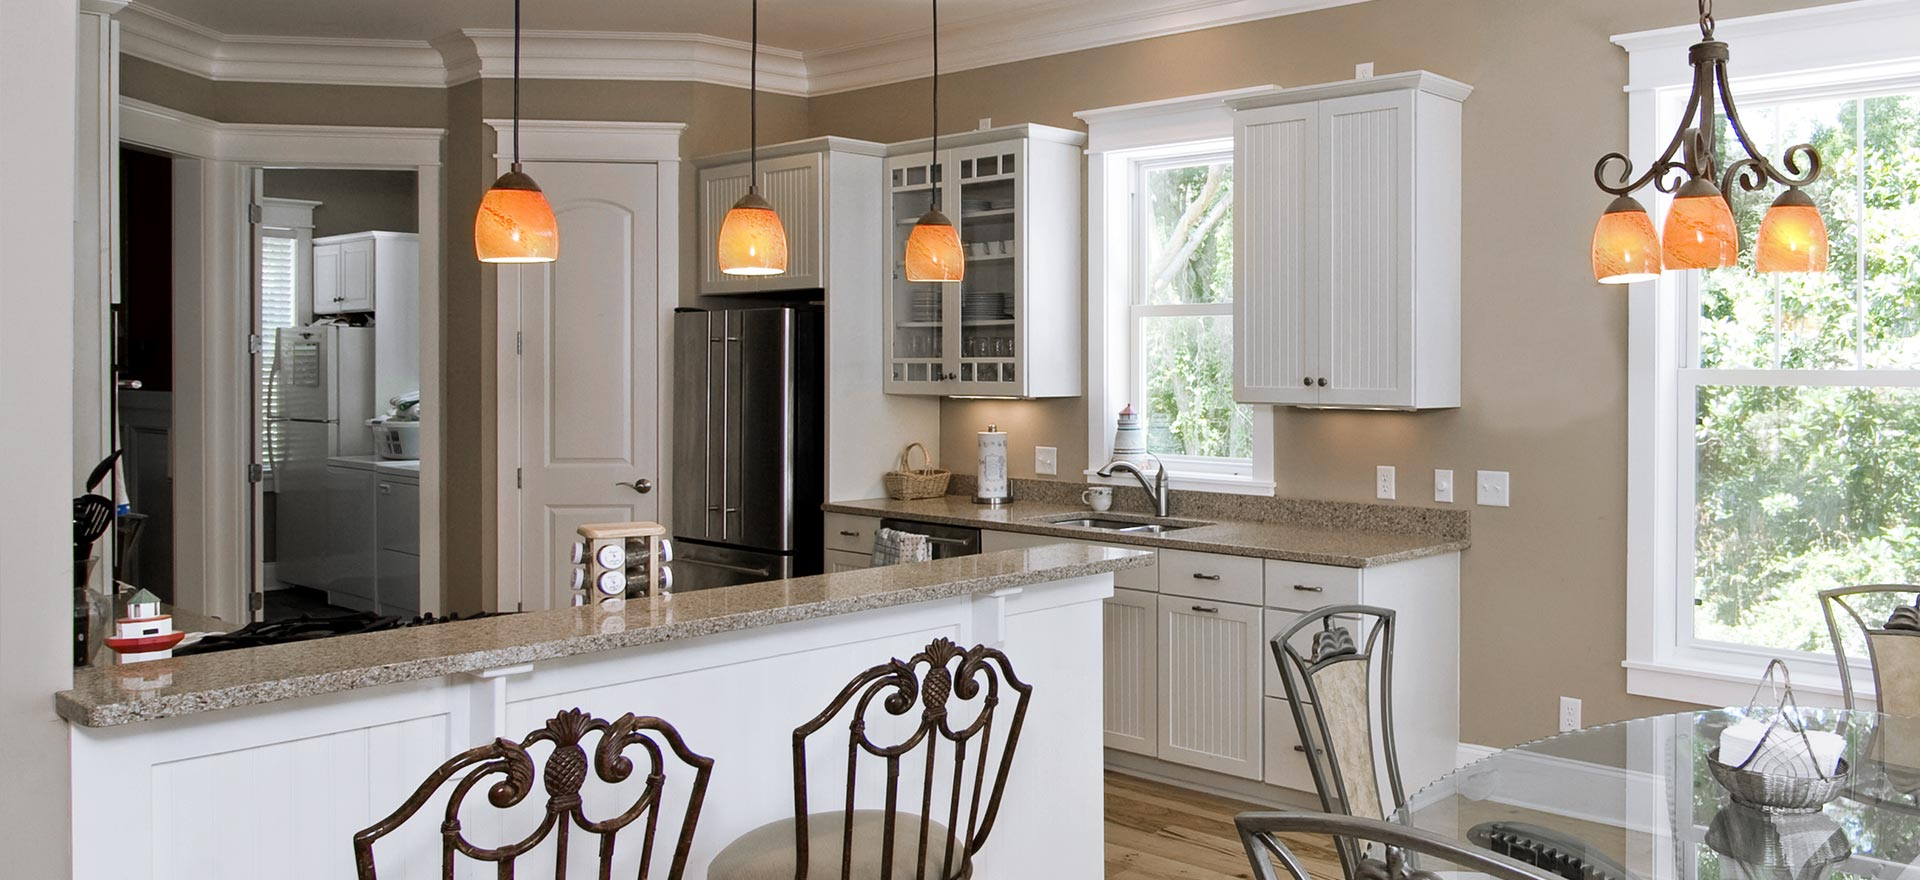 Remodel your home interior with moulding from EL & EL